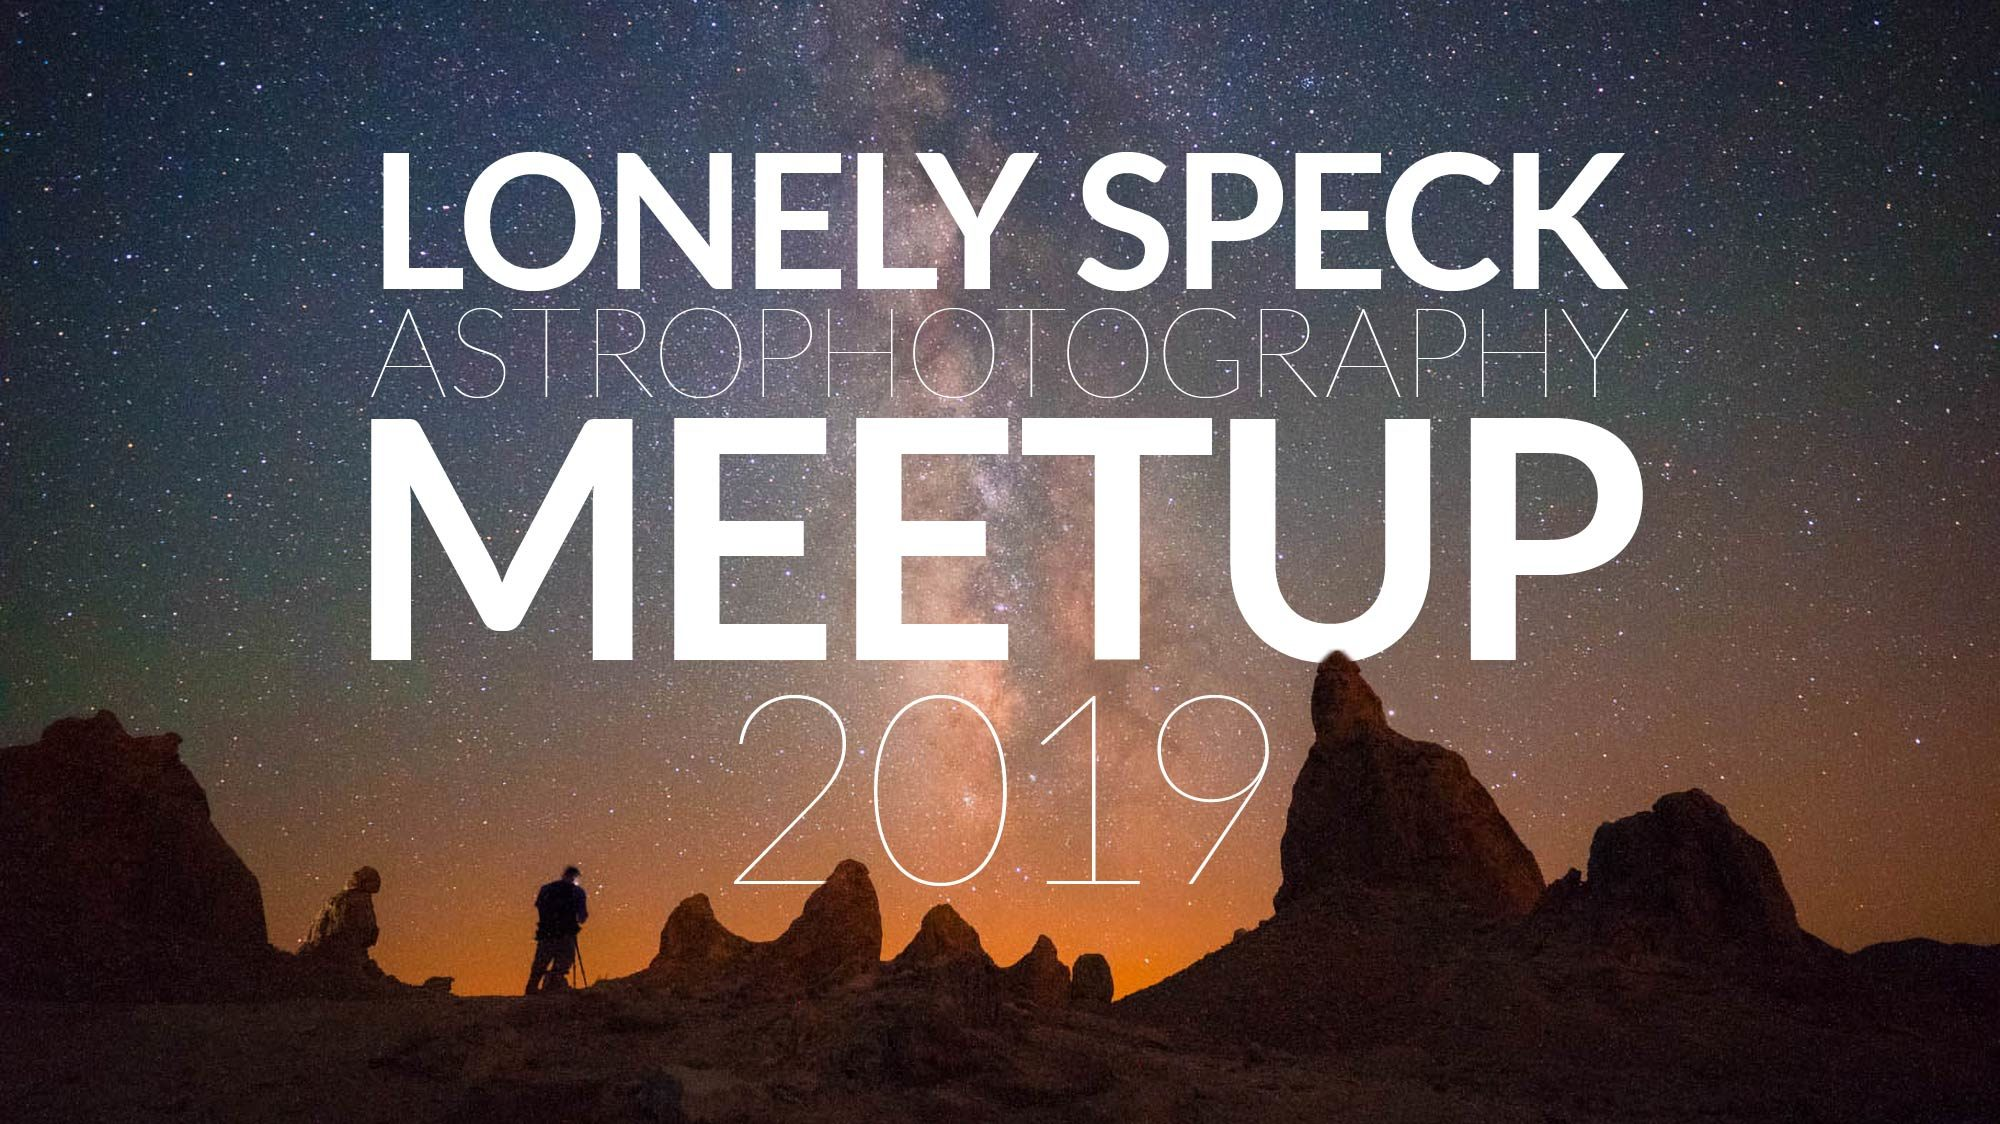 Lonely Speck Astrophotography Meetup 2019: Trona Pinnacles, California, October 19, 2019